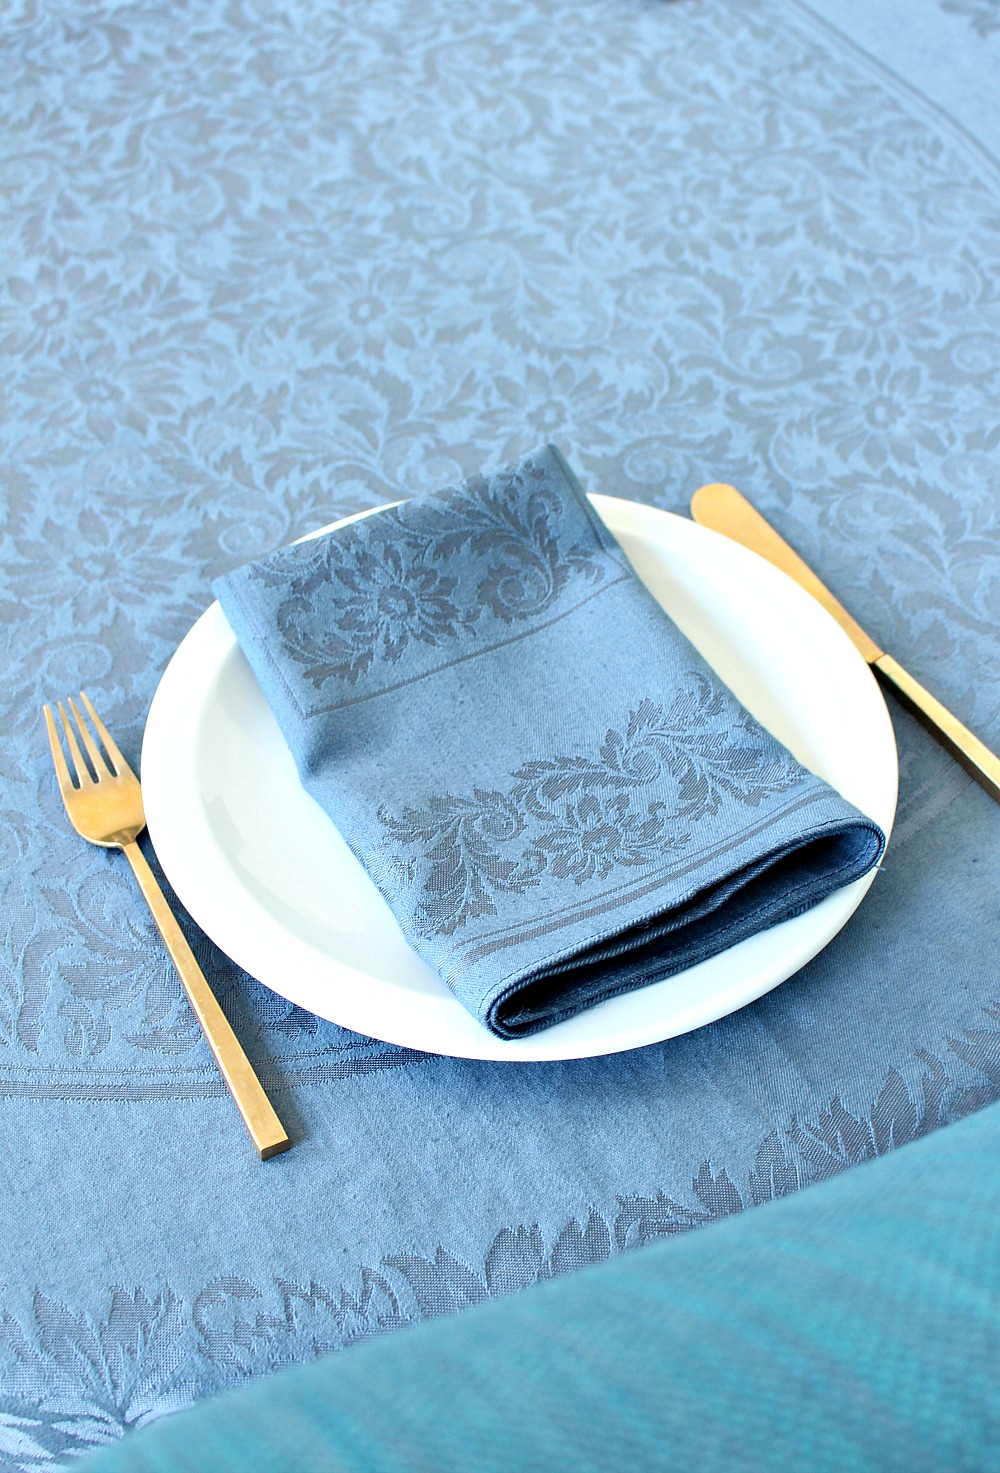 Update dated table linens with dye and breathe new life into old table cloths and cloth napkins // @danslelakehouse